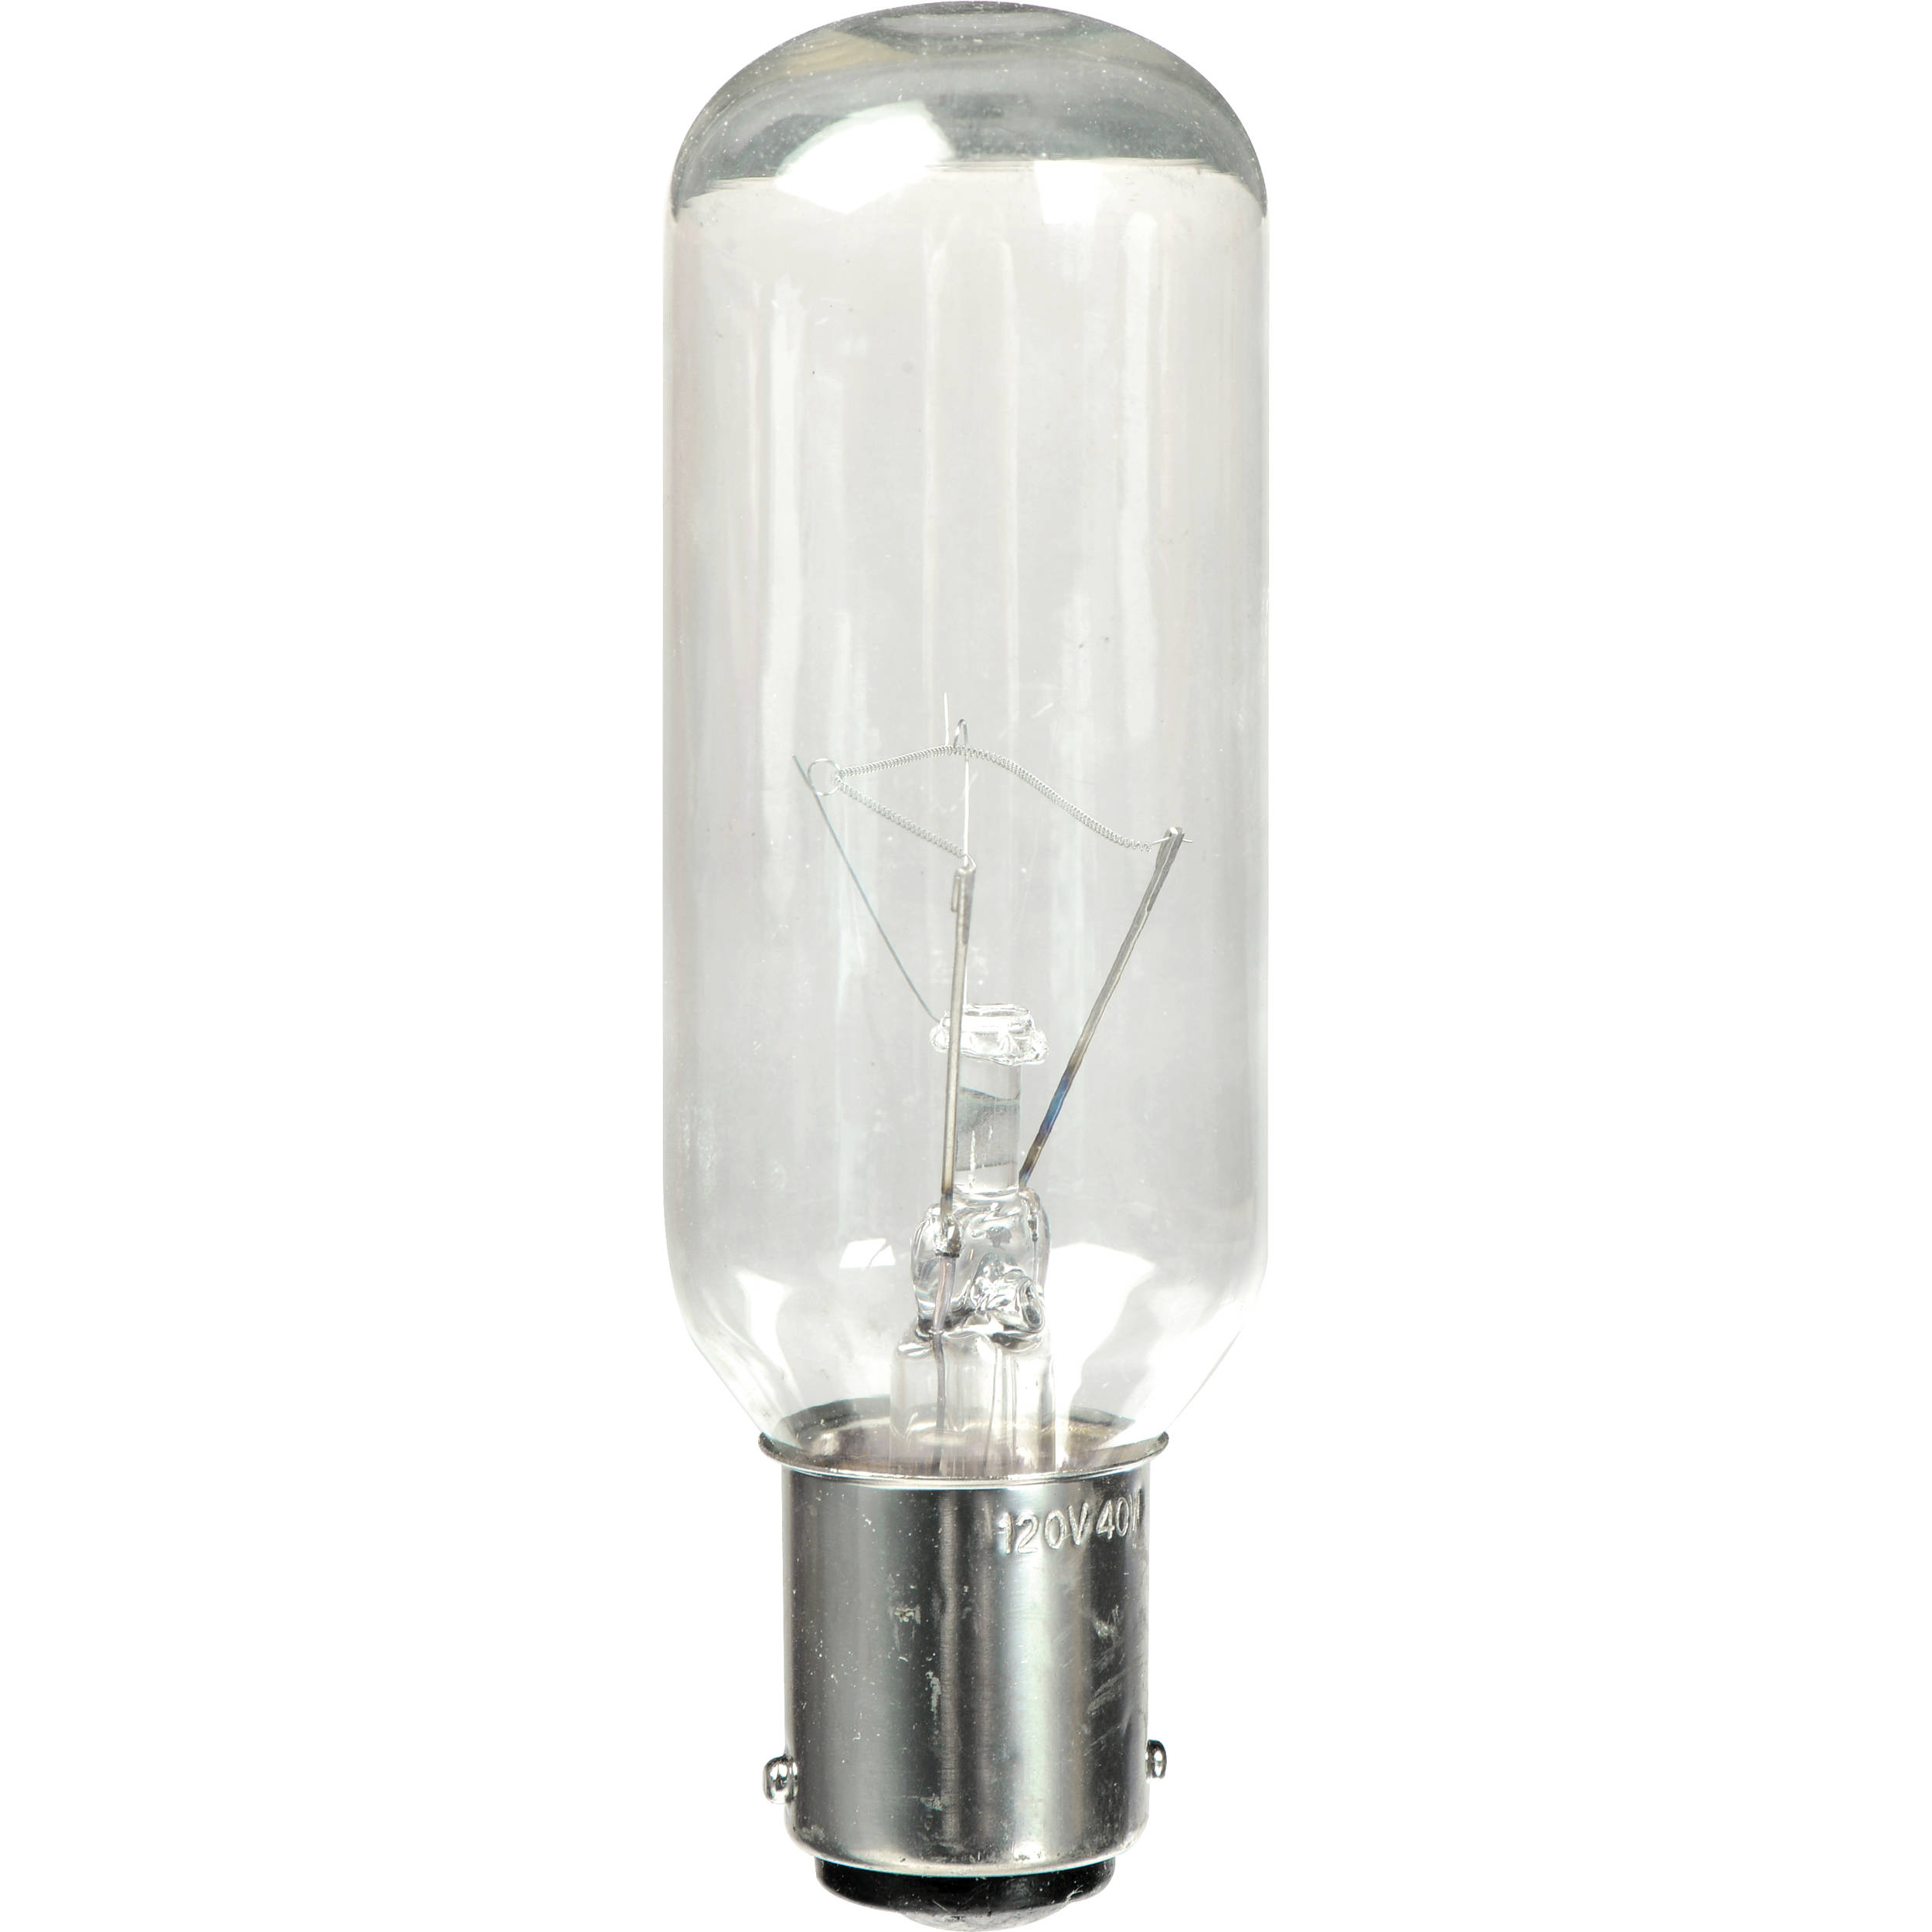 Sdotron Modeling Lamp 40 Watts 120 Volts For M90 M90q Light Units